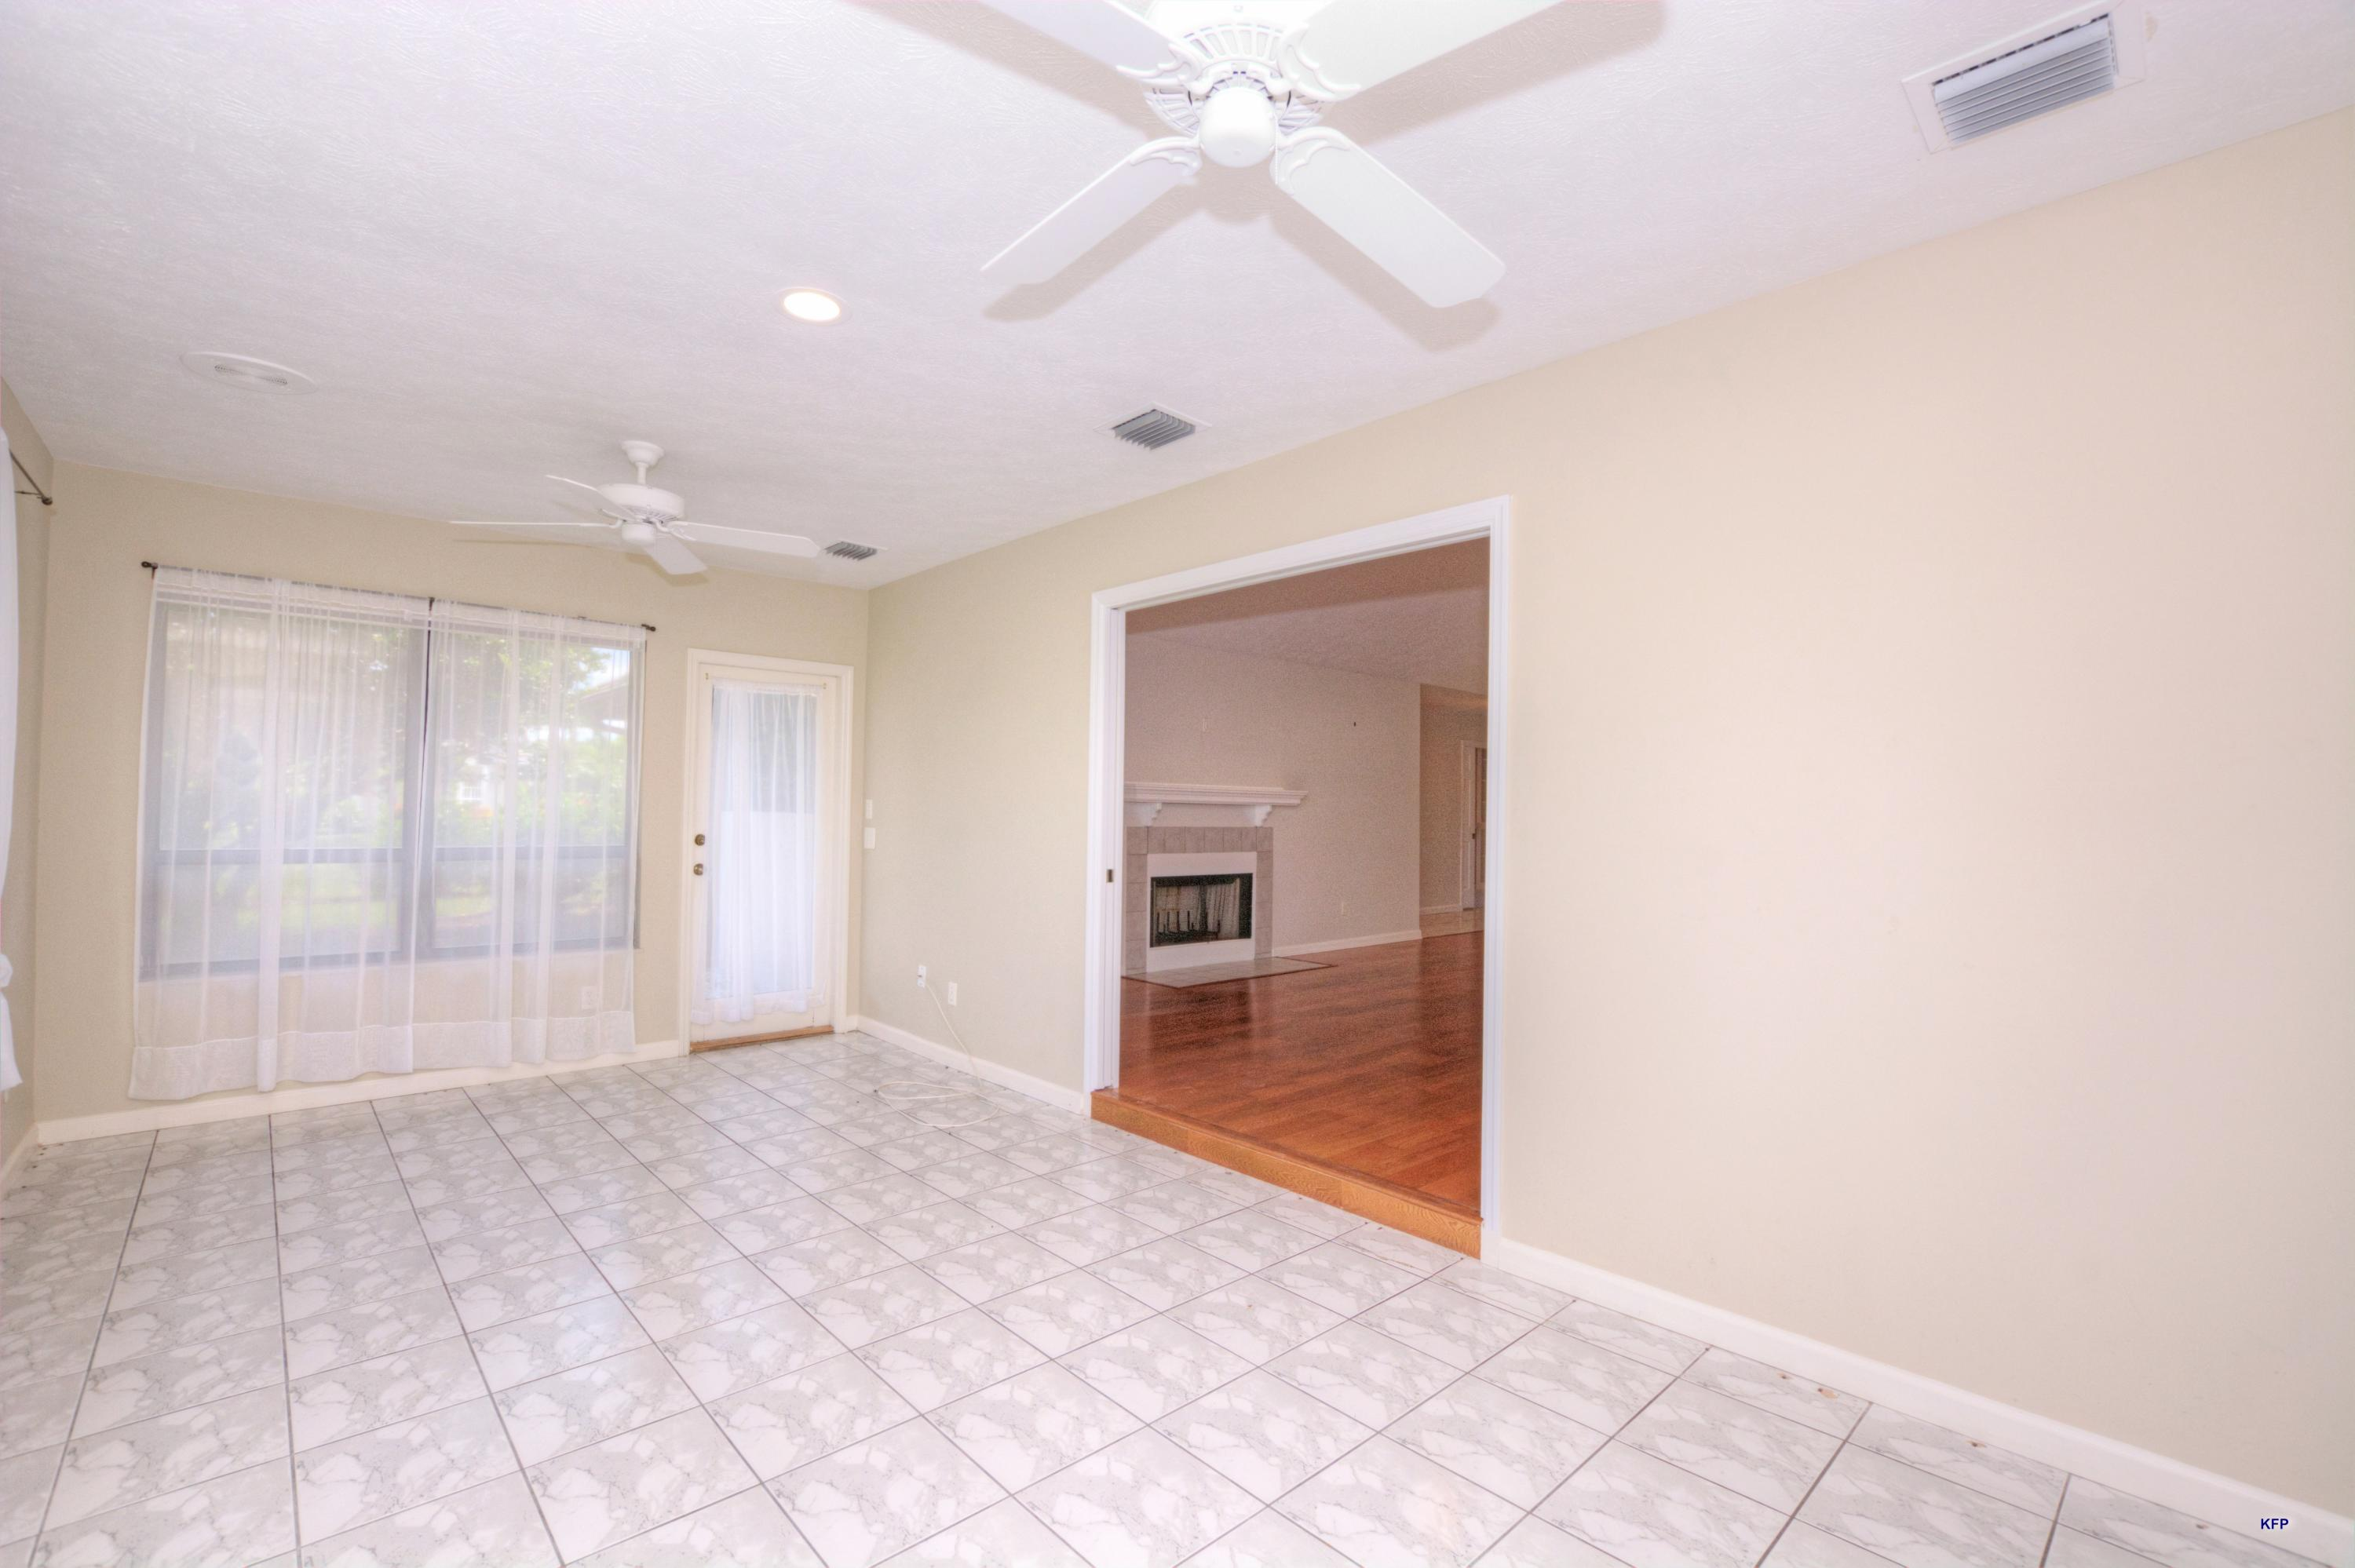 6425 Oakmont Place, Stuart, Florida 34997, 3 Bedrooms Bedrooms, ,3 BathroomsBathrooms,A,Single family,Oakmont,RX-10461833